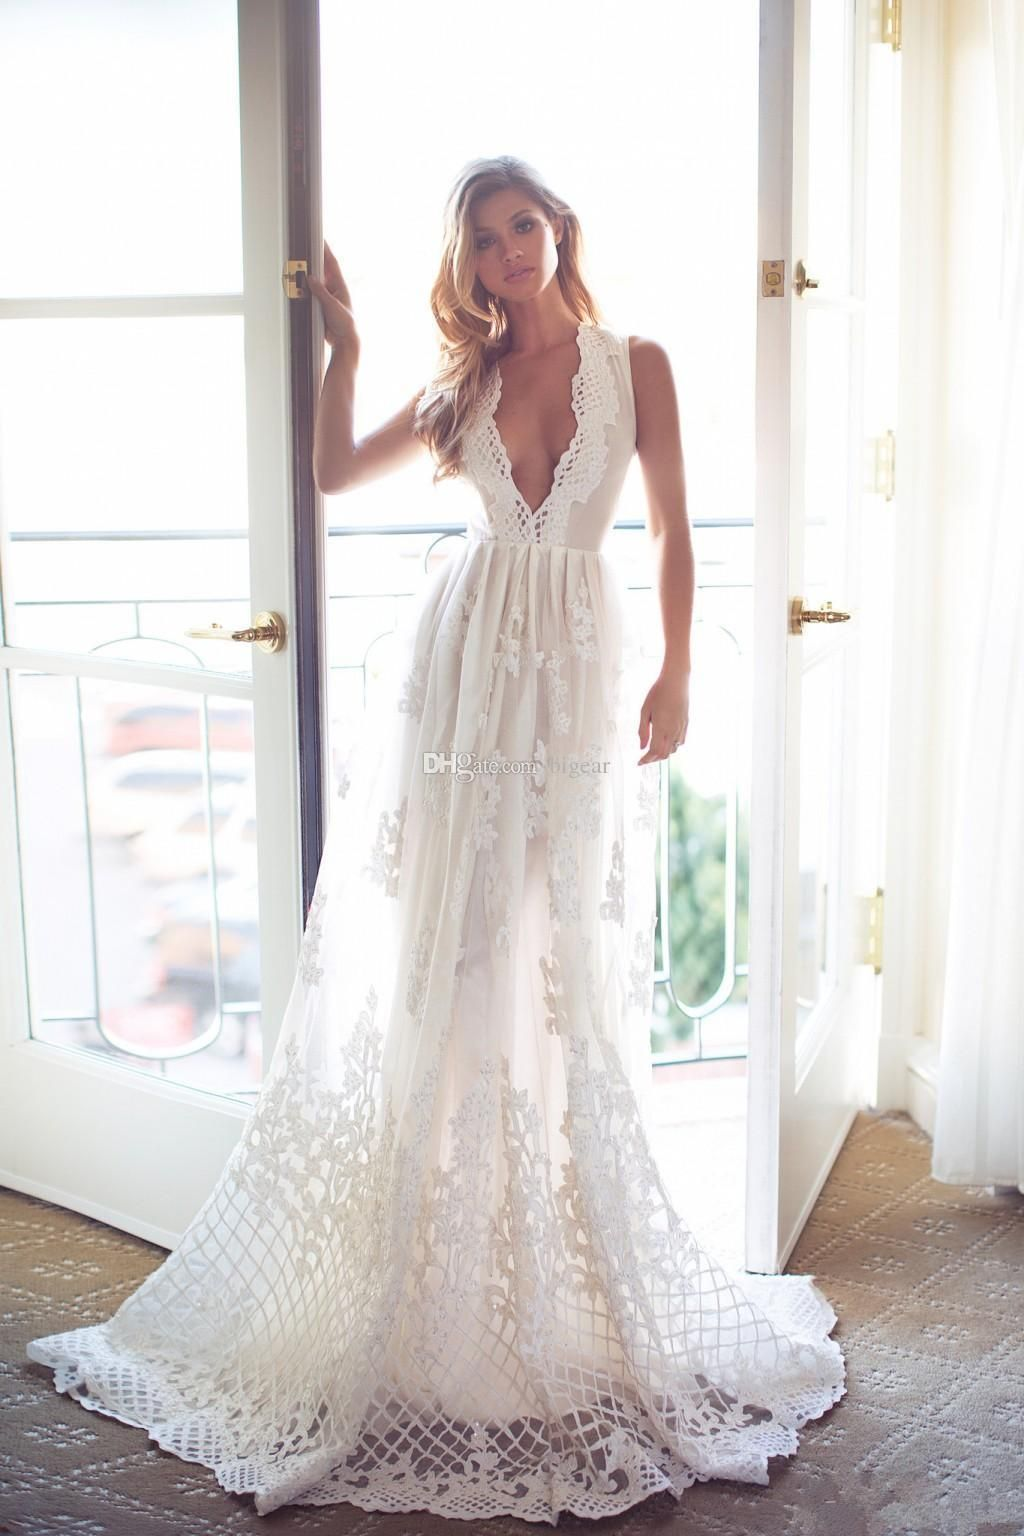 Plunging neck long wedding dress with illusion back in dream